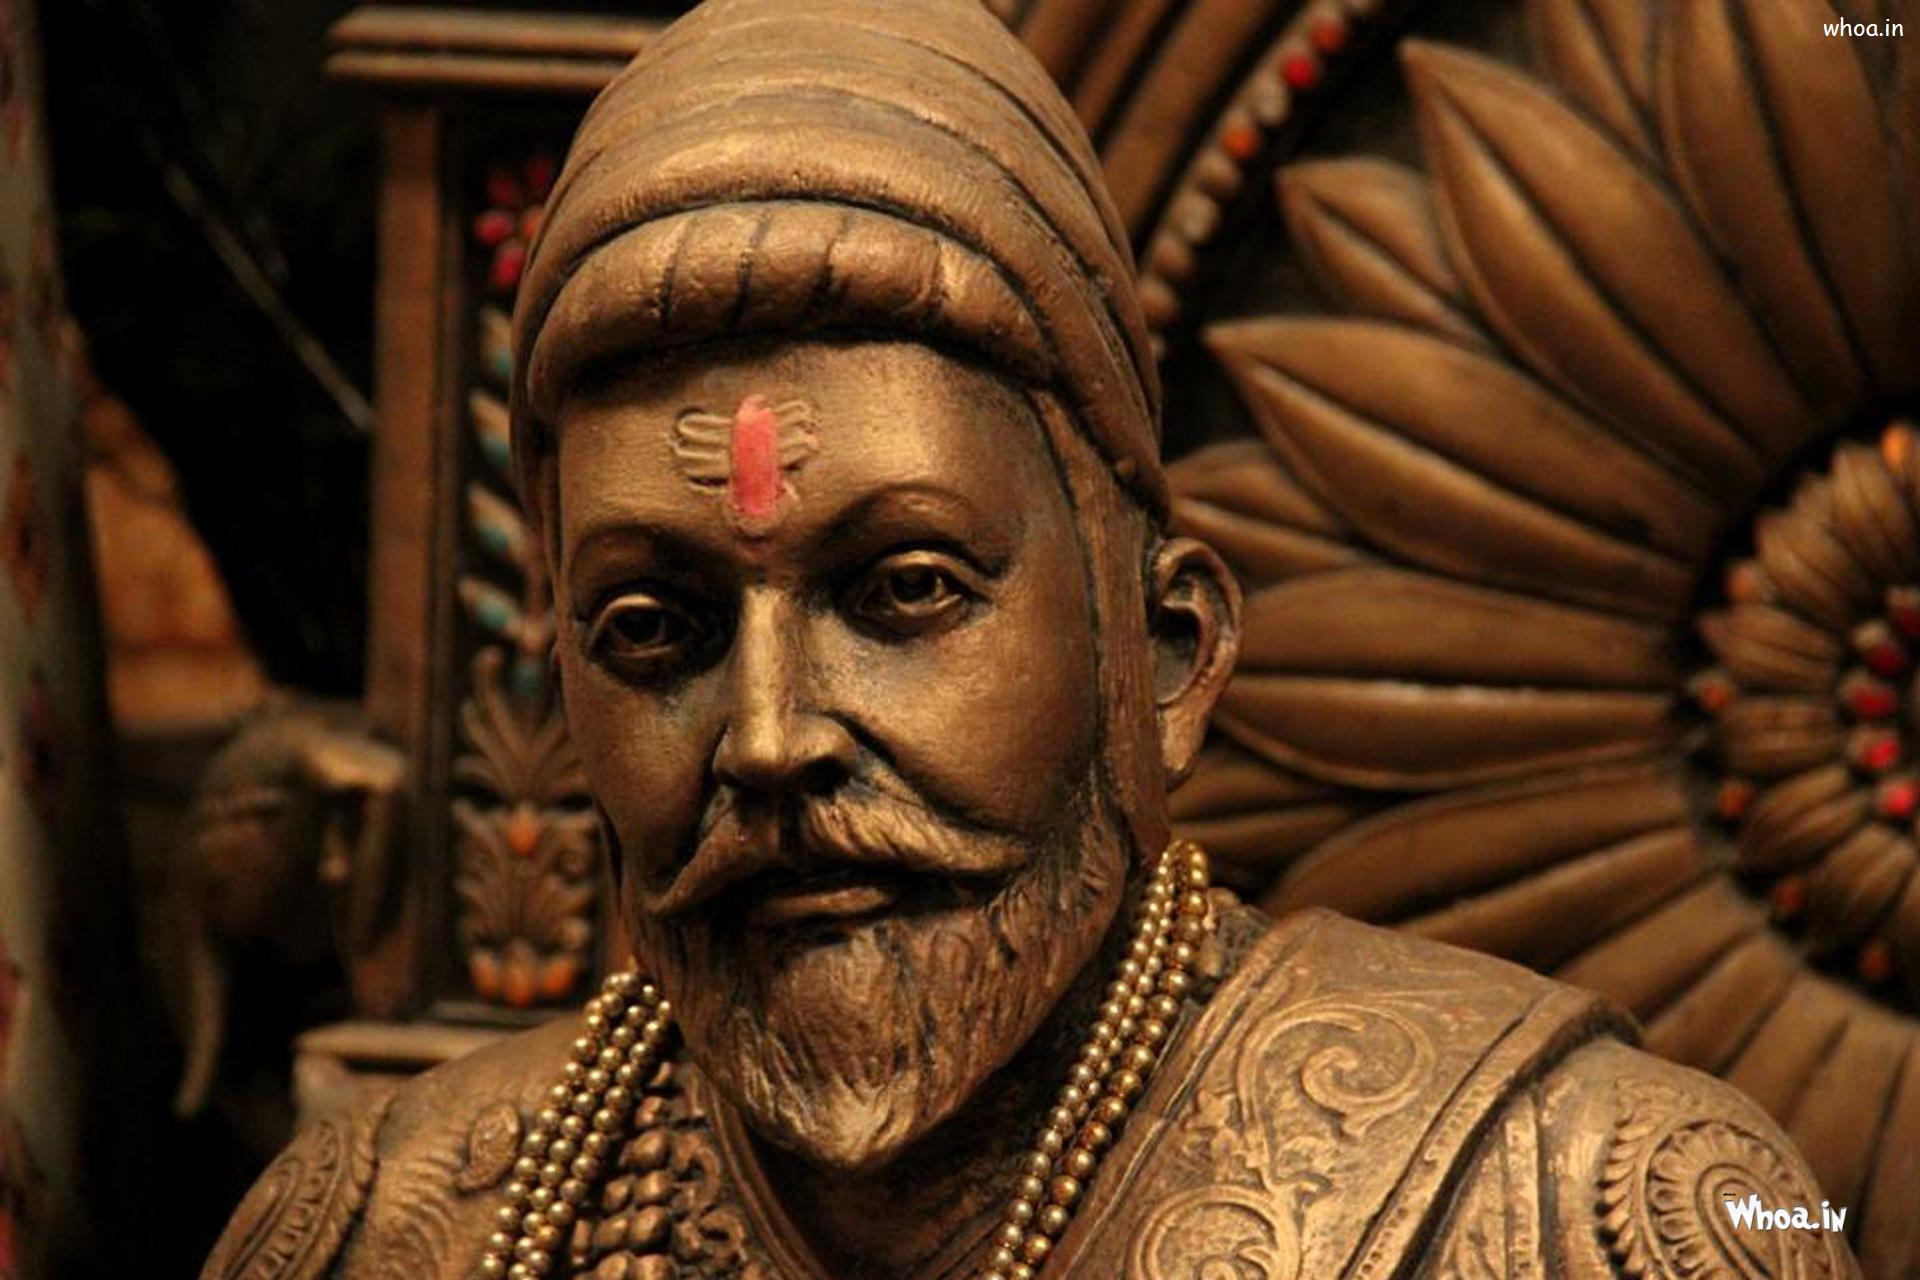 Hd wallpaper shivaji maharaj - Download